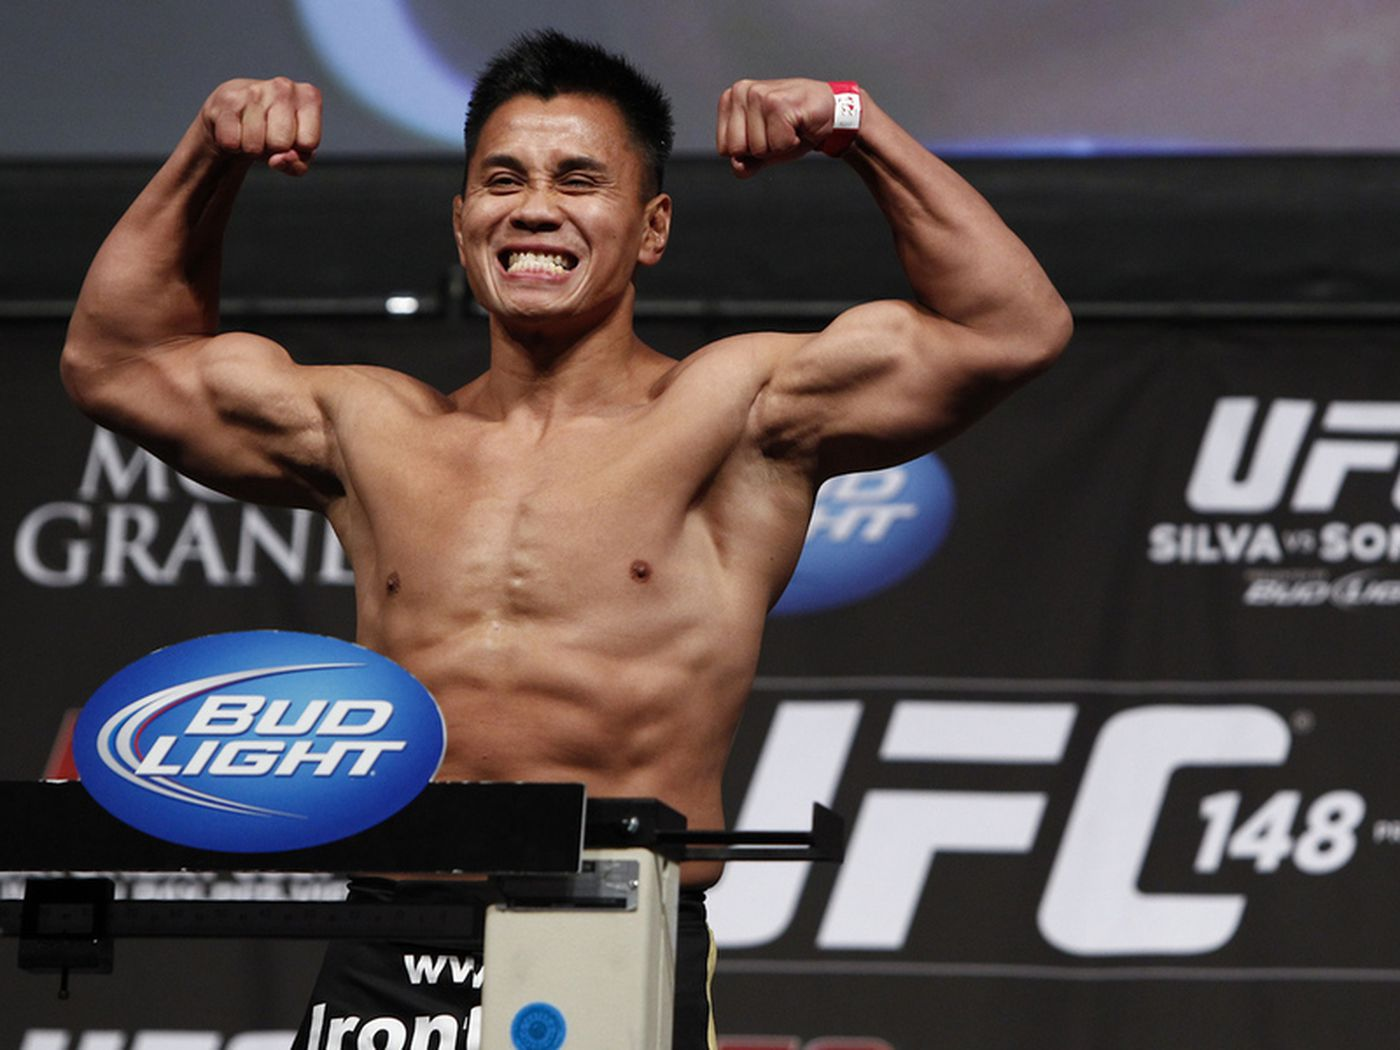 Ufc 148 Results Cung Le Wins Decision Over Patrick Cote Mmamaniacom